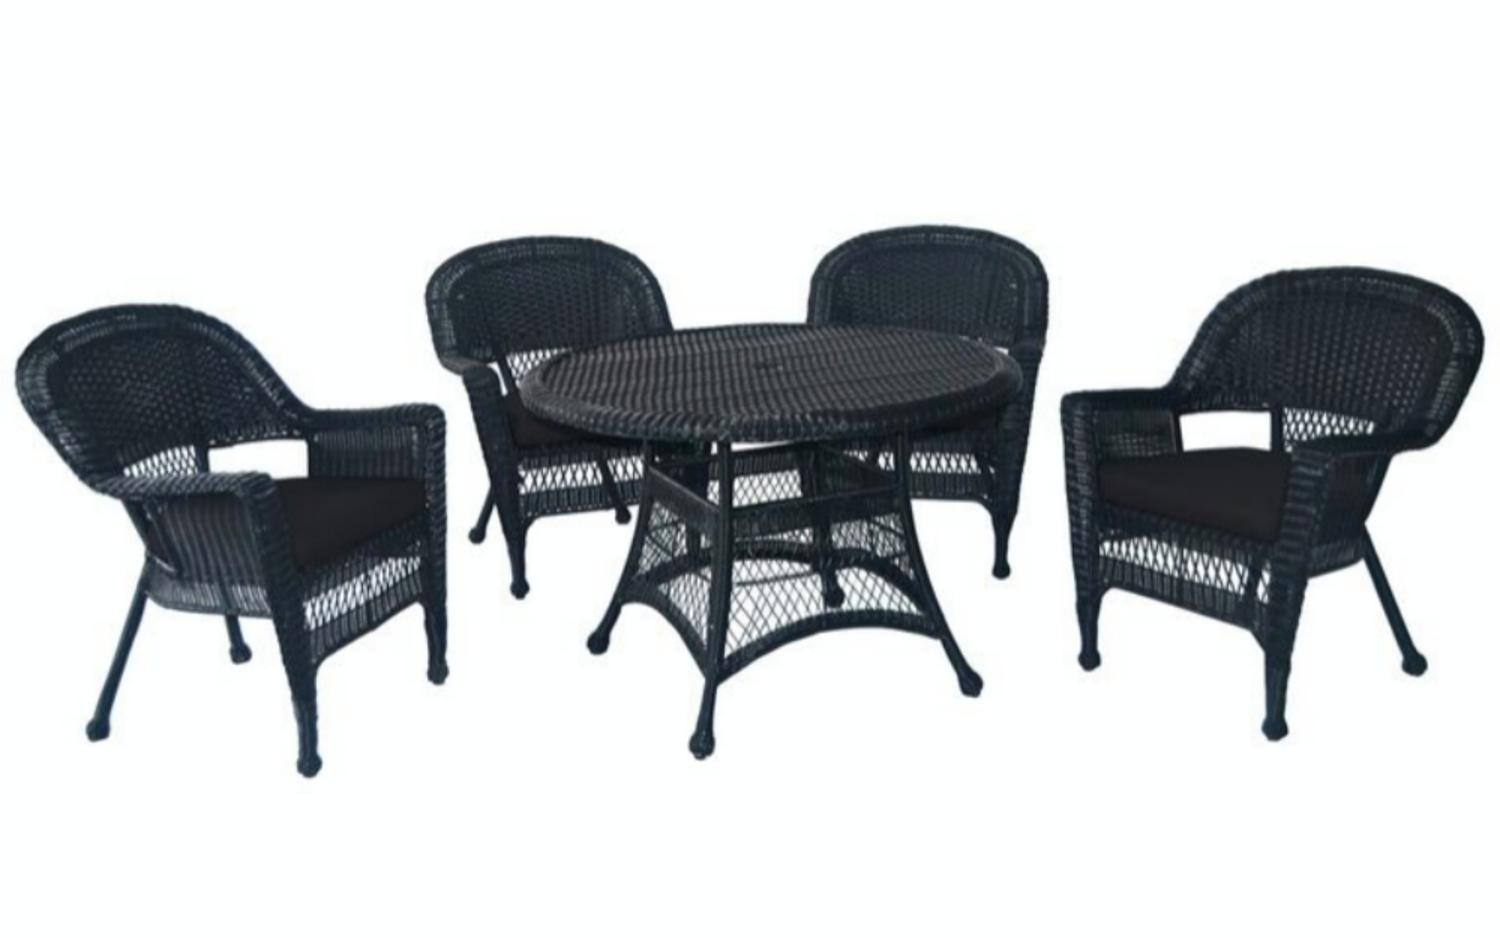 5-Piece Black Resin Wicker Chair & Table Patio Dining Furniture Set Black Cushions by CC Outdoor Living